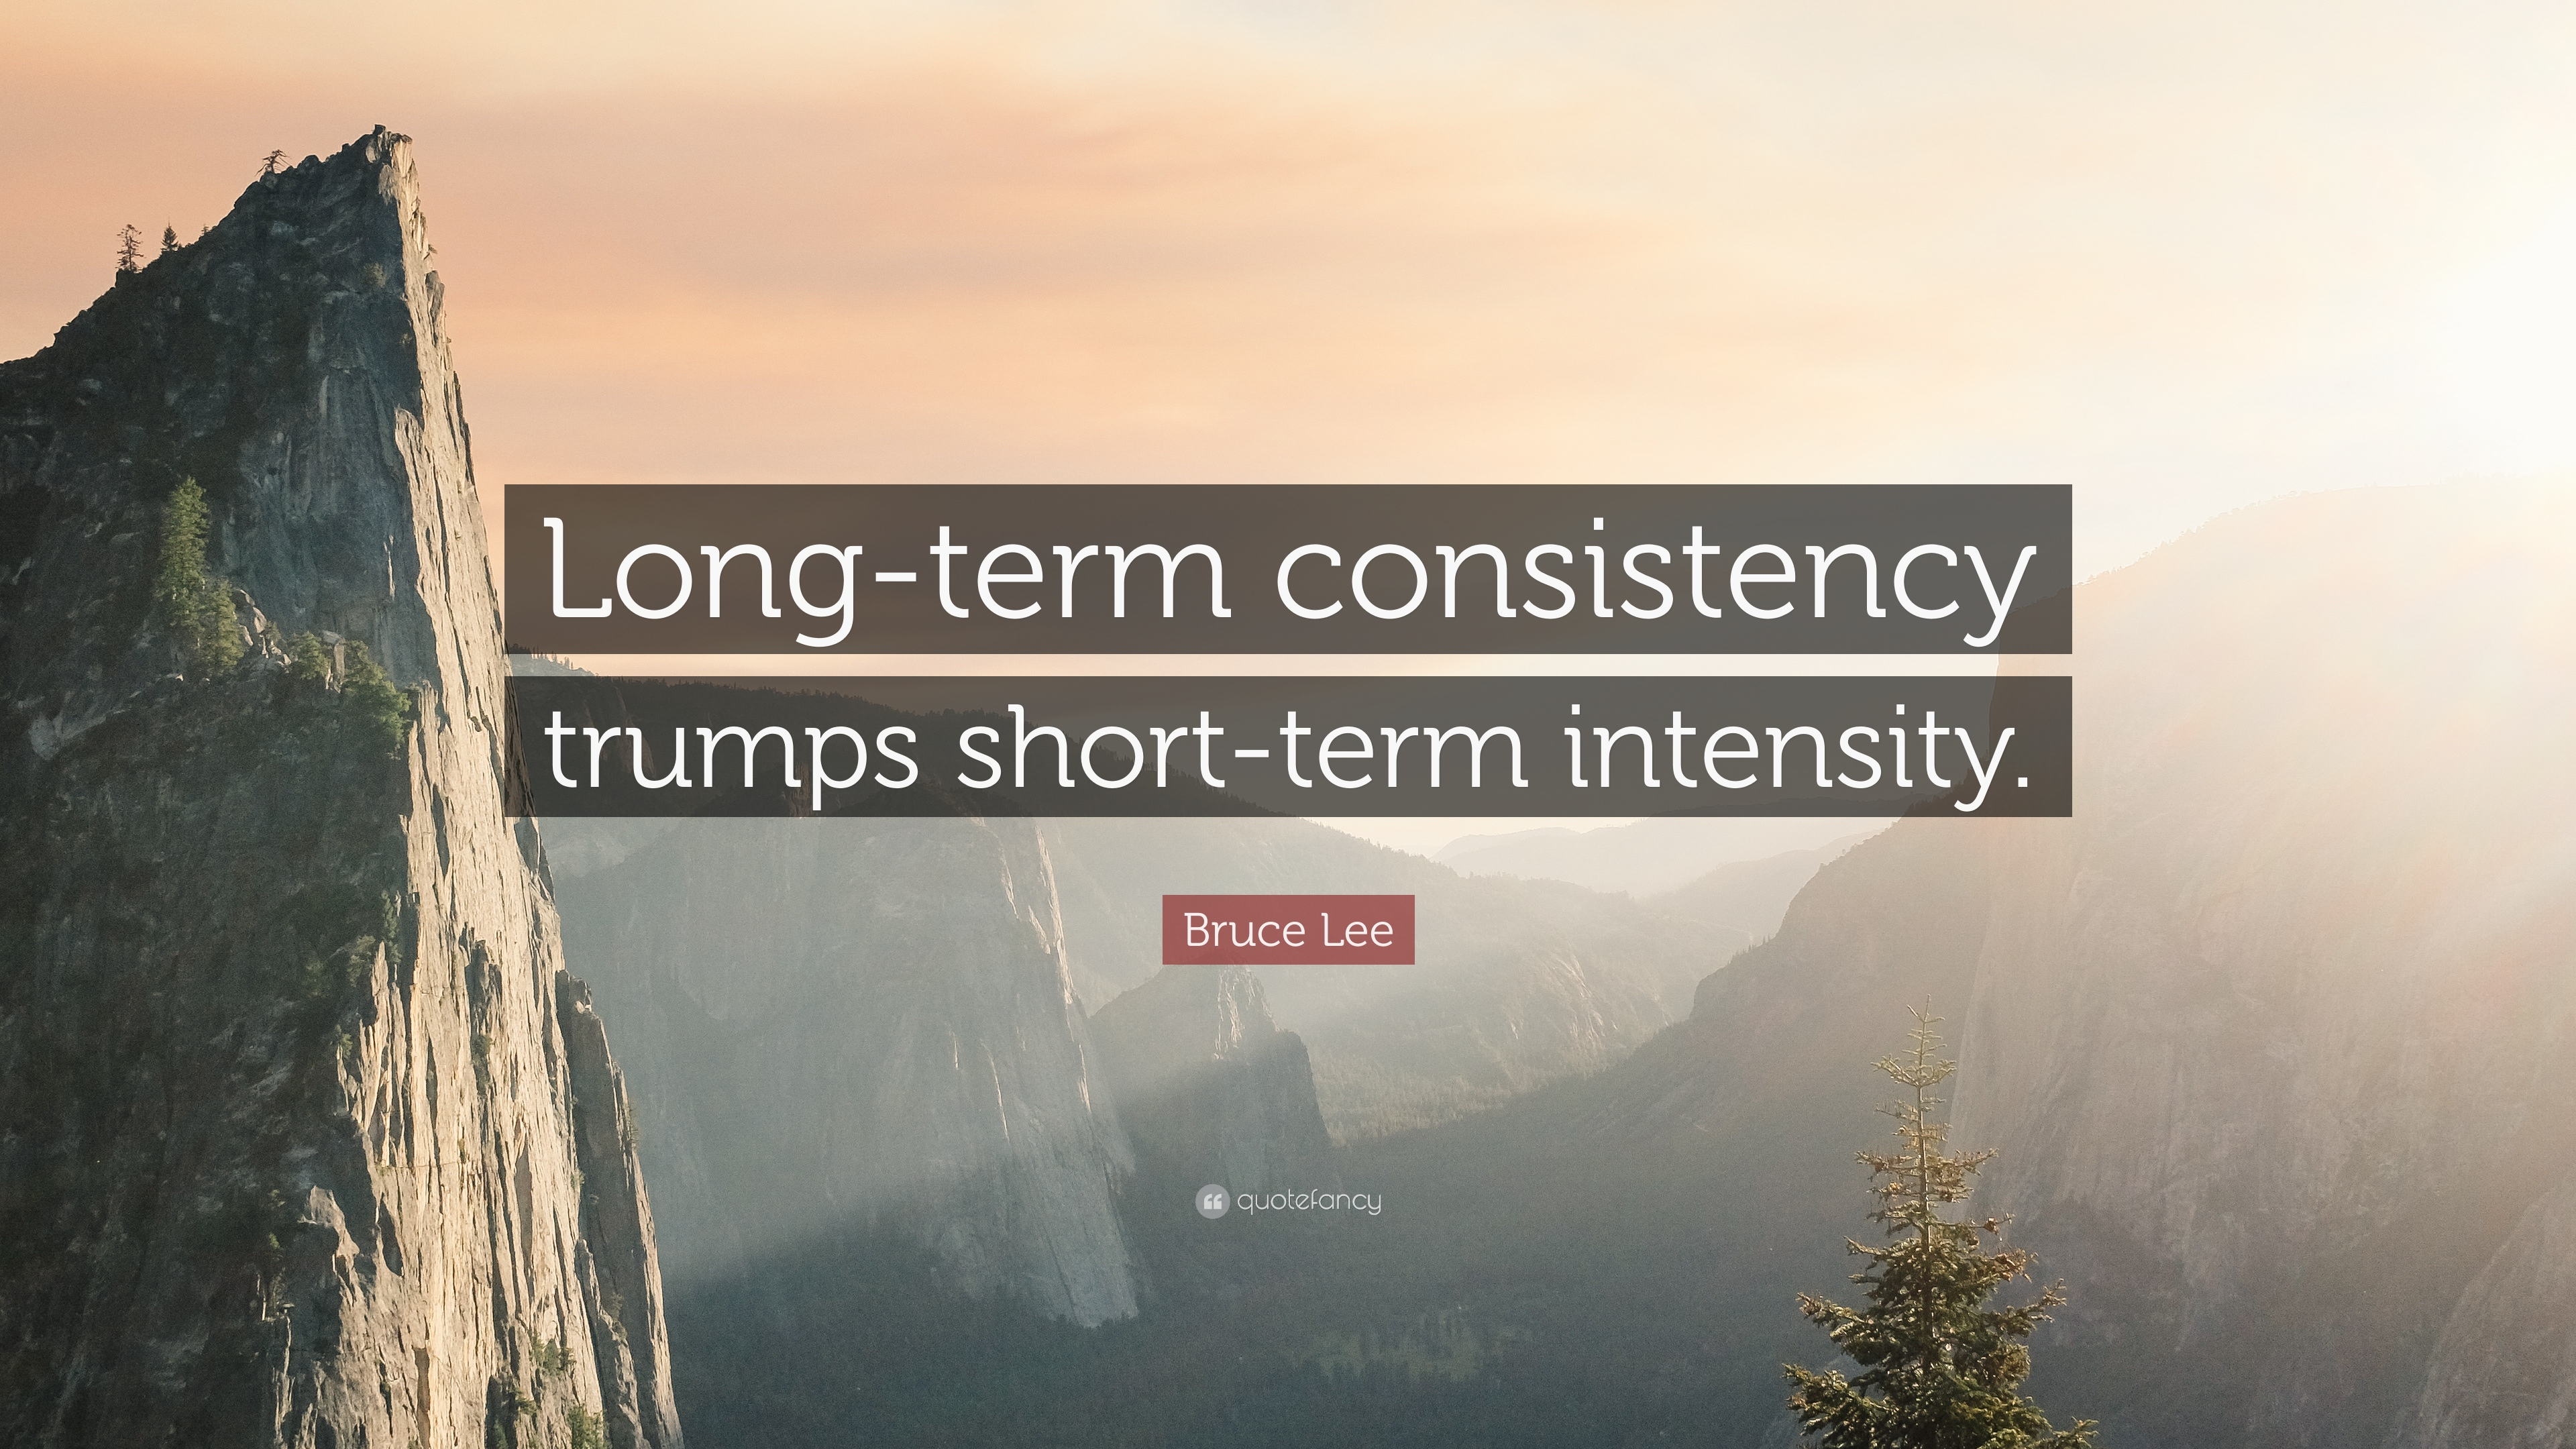 Bruce Lee Quote Longterm consistency trumps shortterm